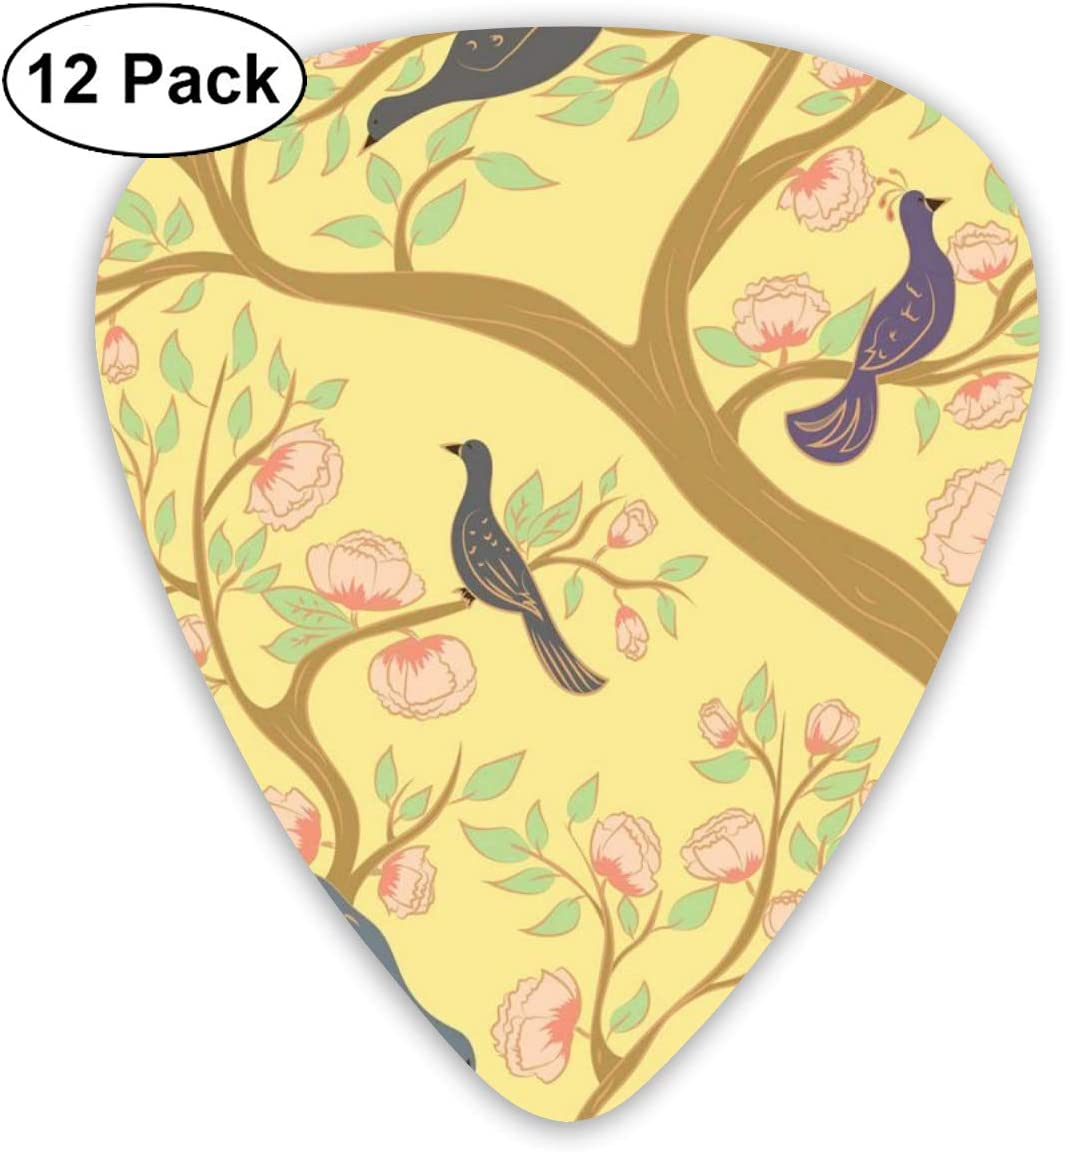 Guitar Picks 12-Pack,Paradise Birds On The Branches Of A Flowering Tree In Pastel Tones: Amazon.es: Instrumentos musicales